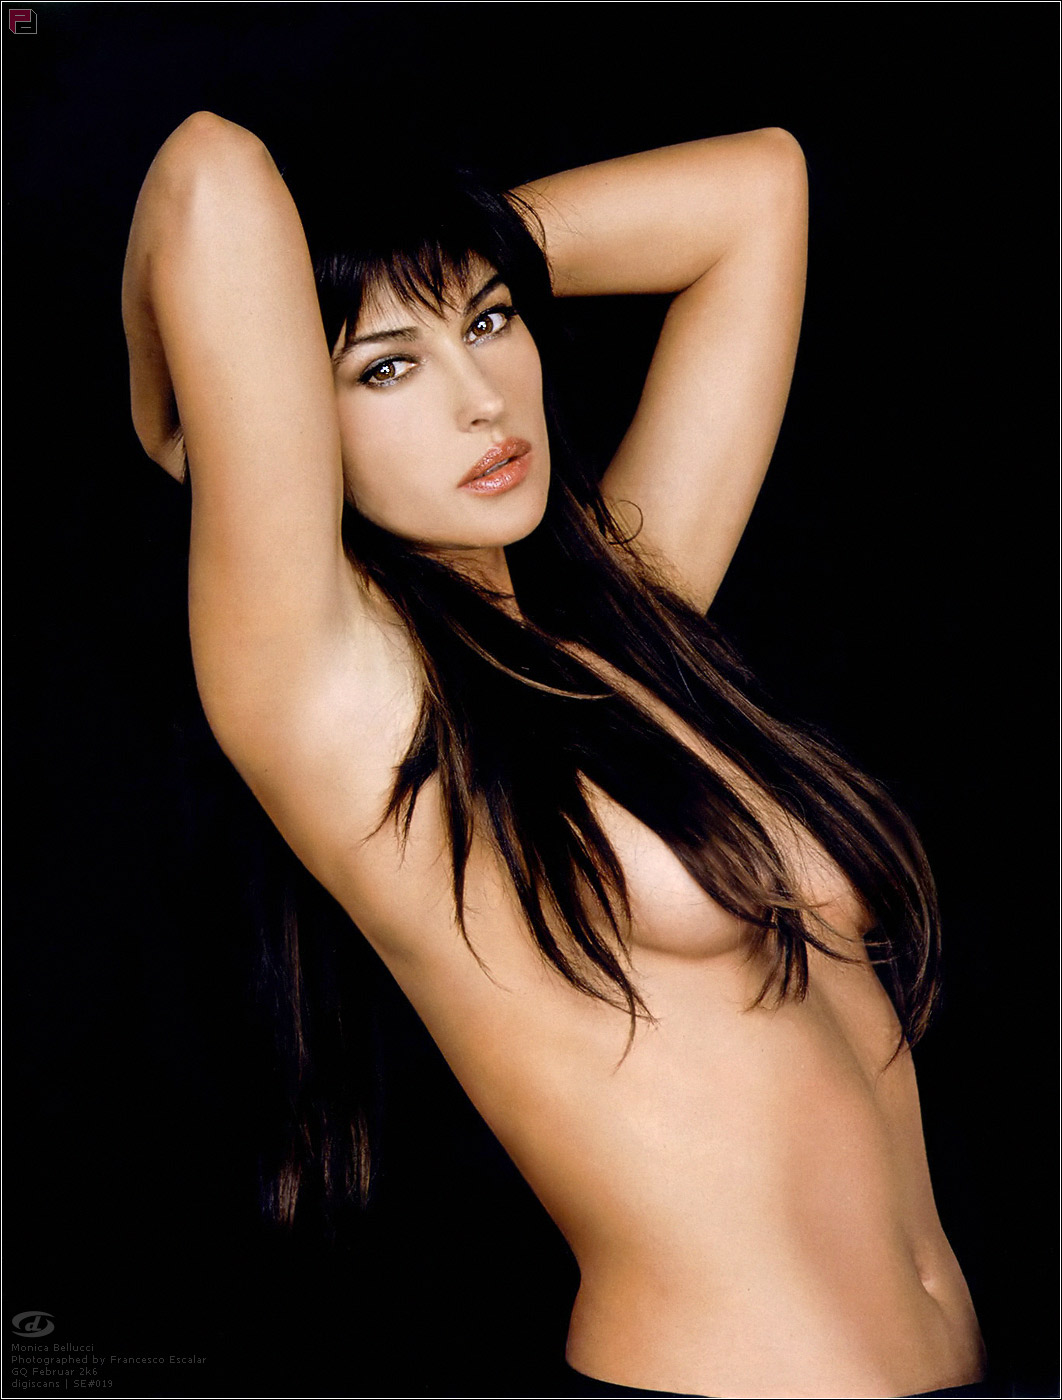 Monica belucci fucking seems